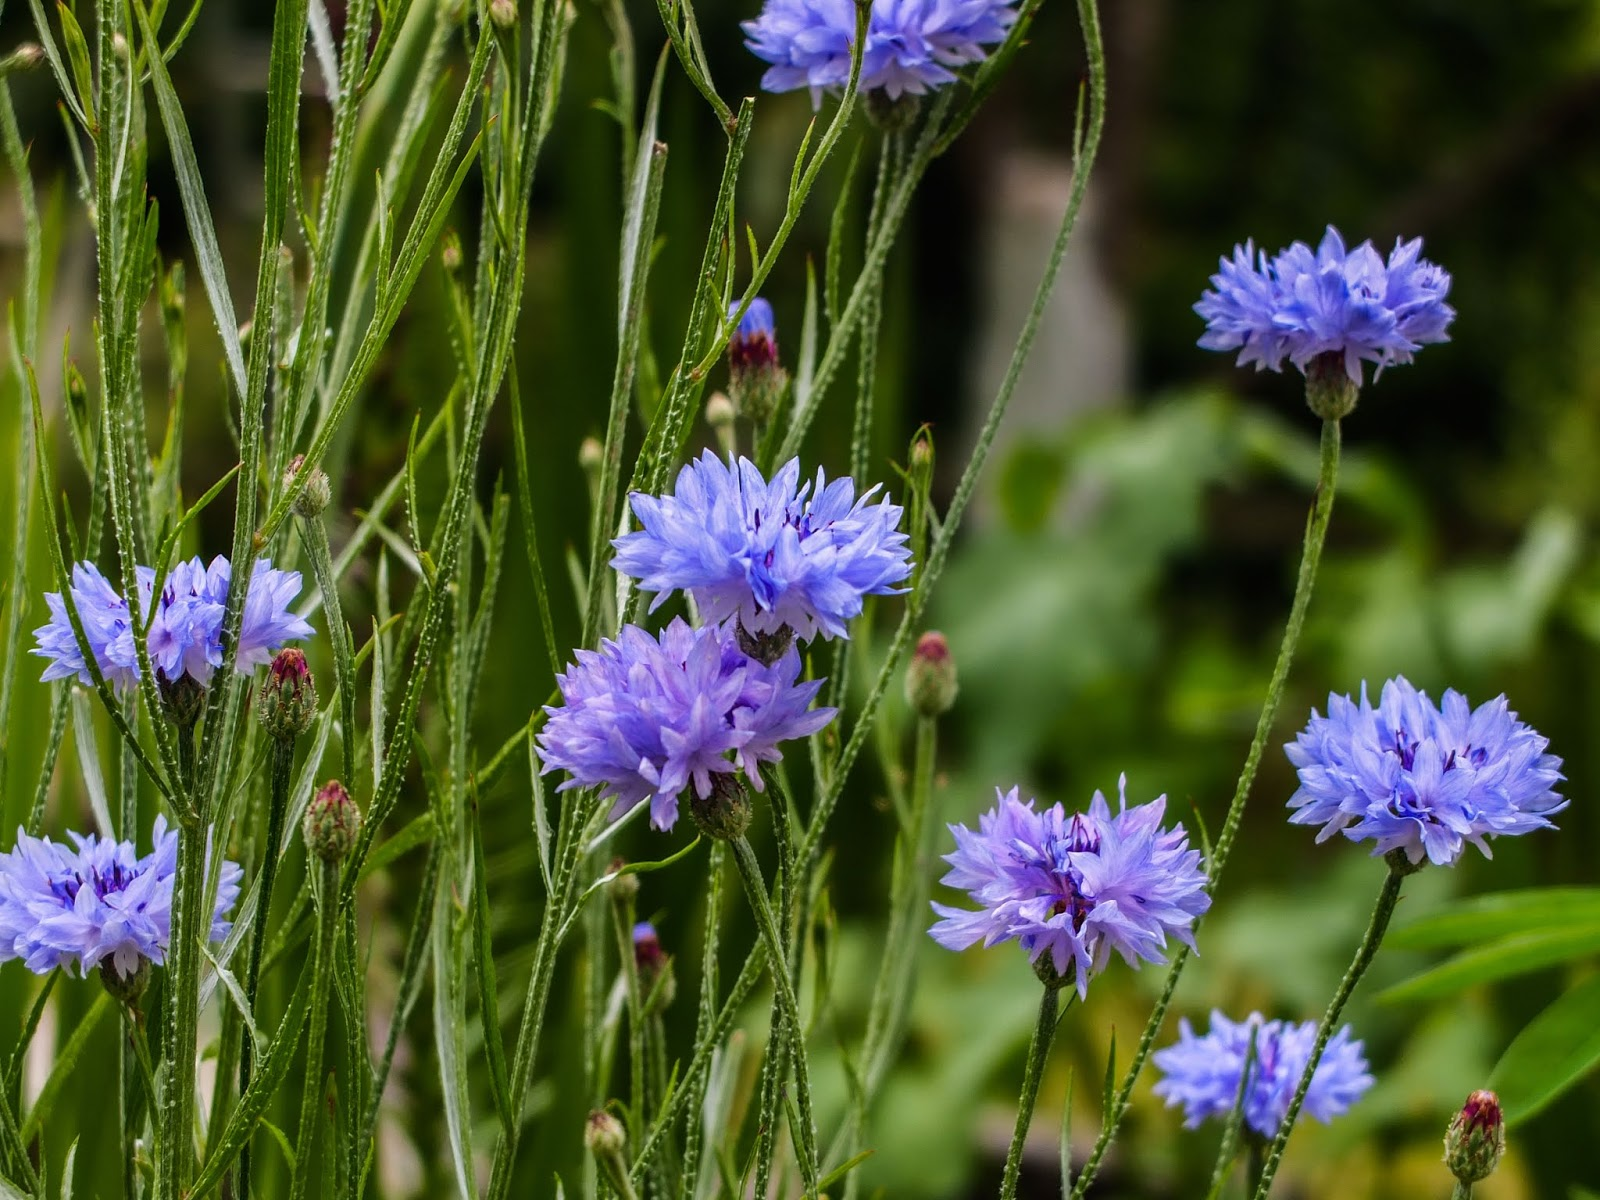 A bunch of blue Bachelor's Button flowers.